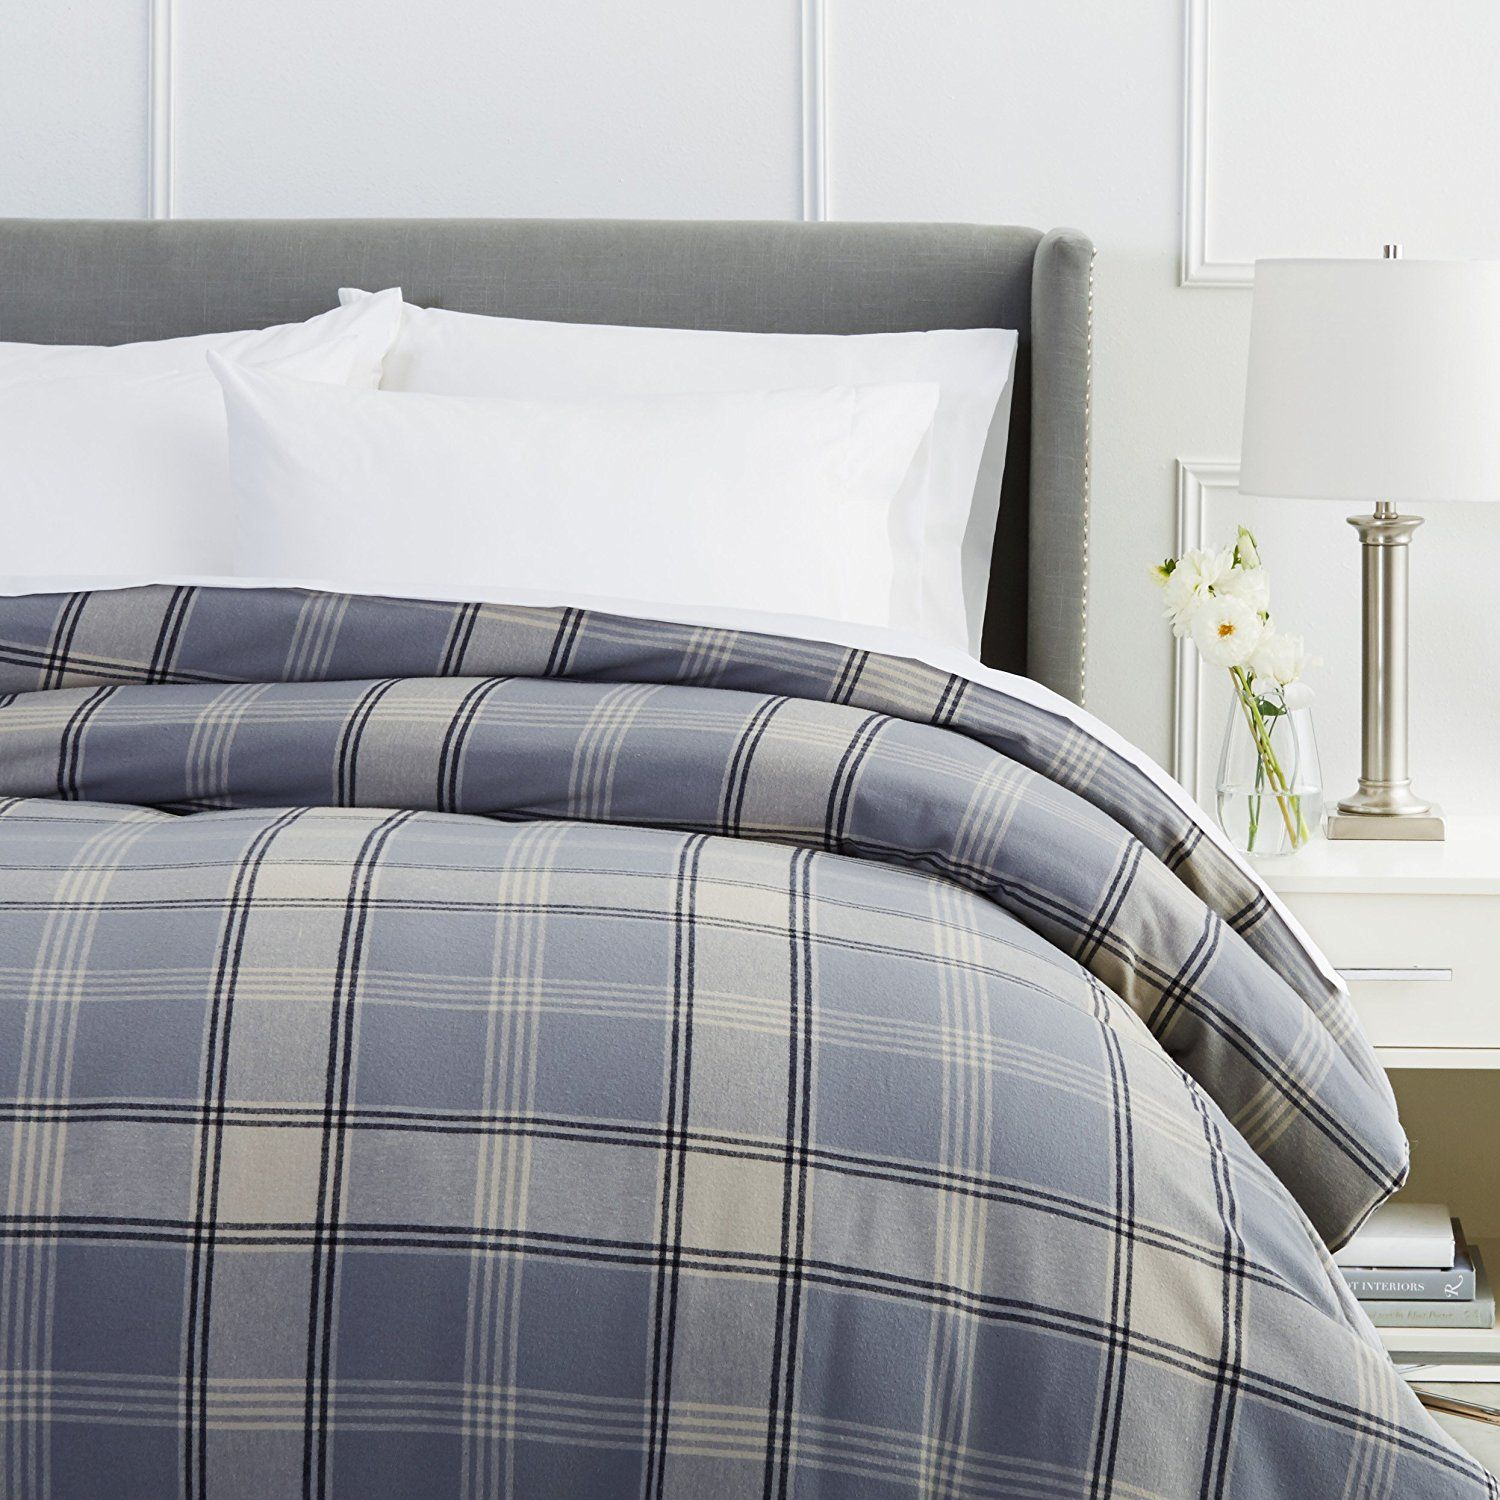 Pinzon Bedding The Best Flannel Sheets Review February 2018 Full Duvet Cover Comfy Bed Flannel Duvet Cover